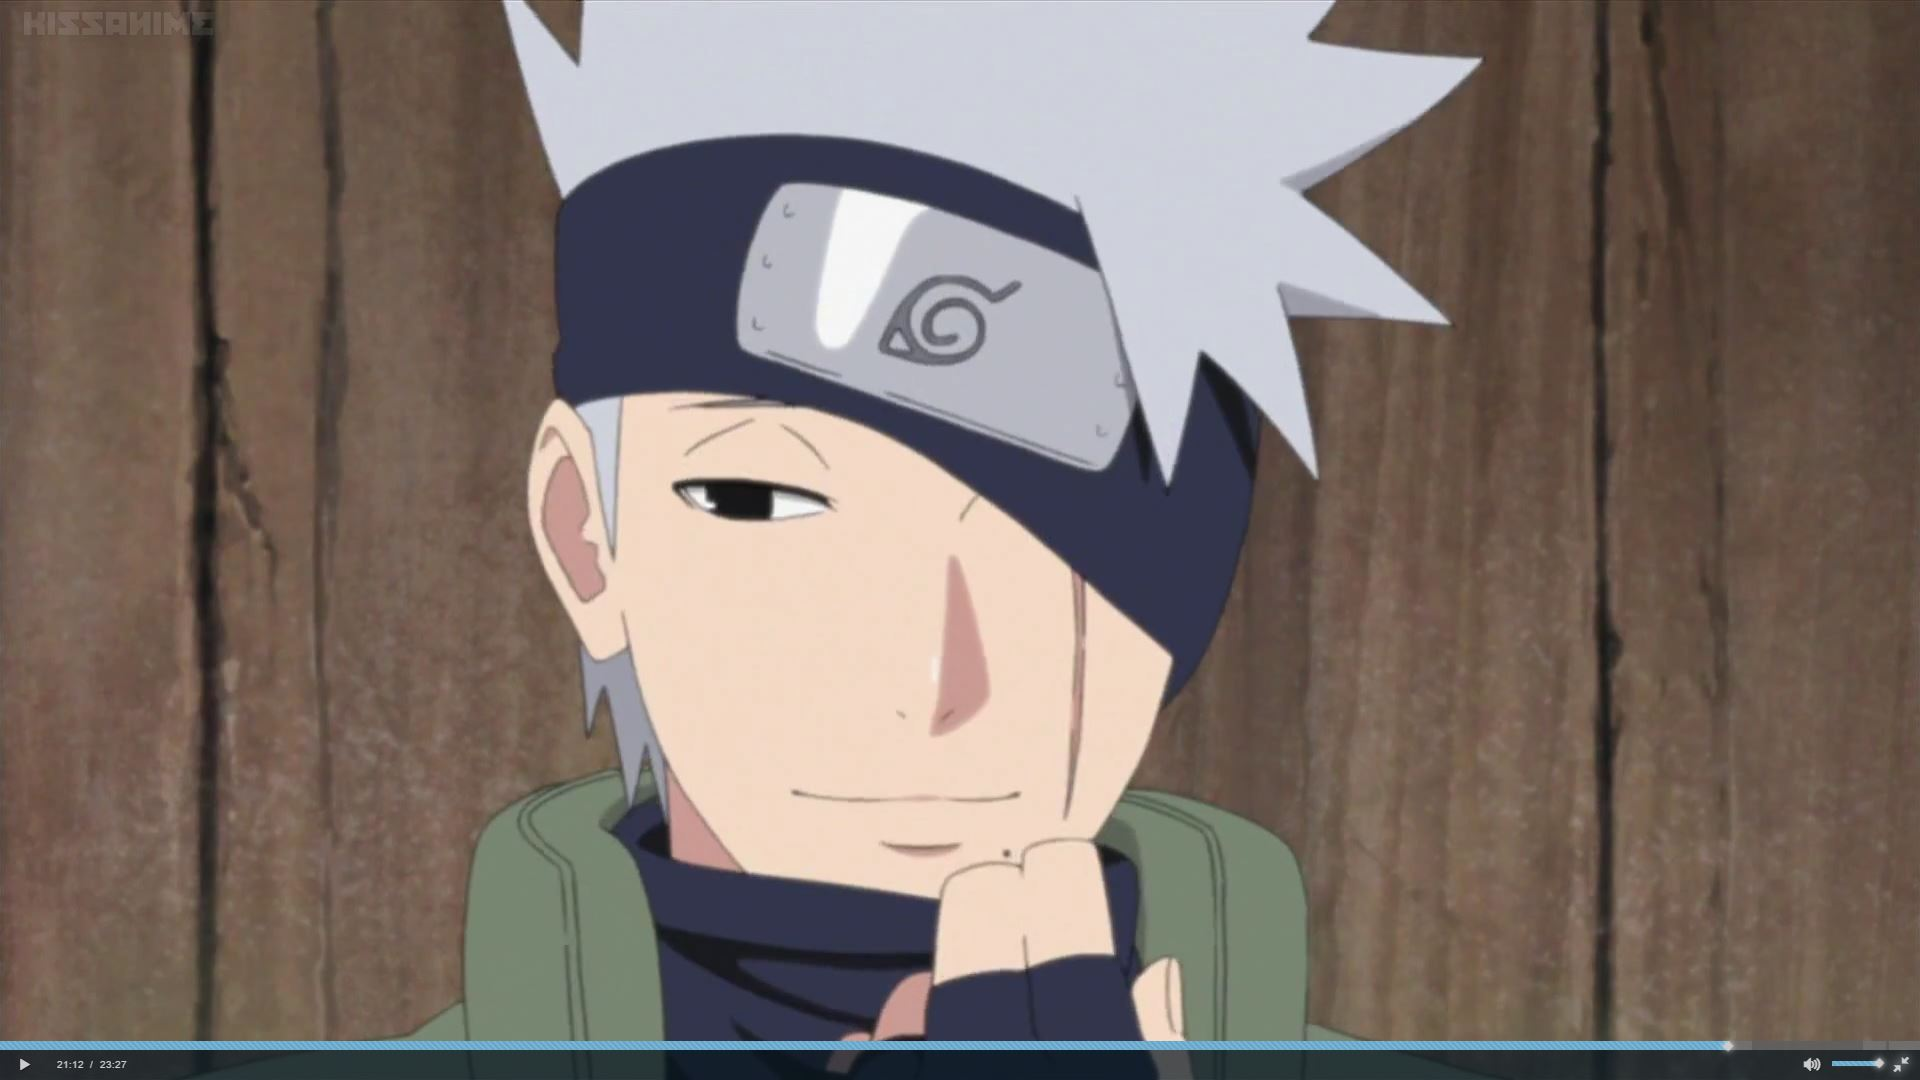 Naruto: Shippuuden Episode 469 Discussion - Forums